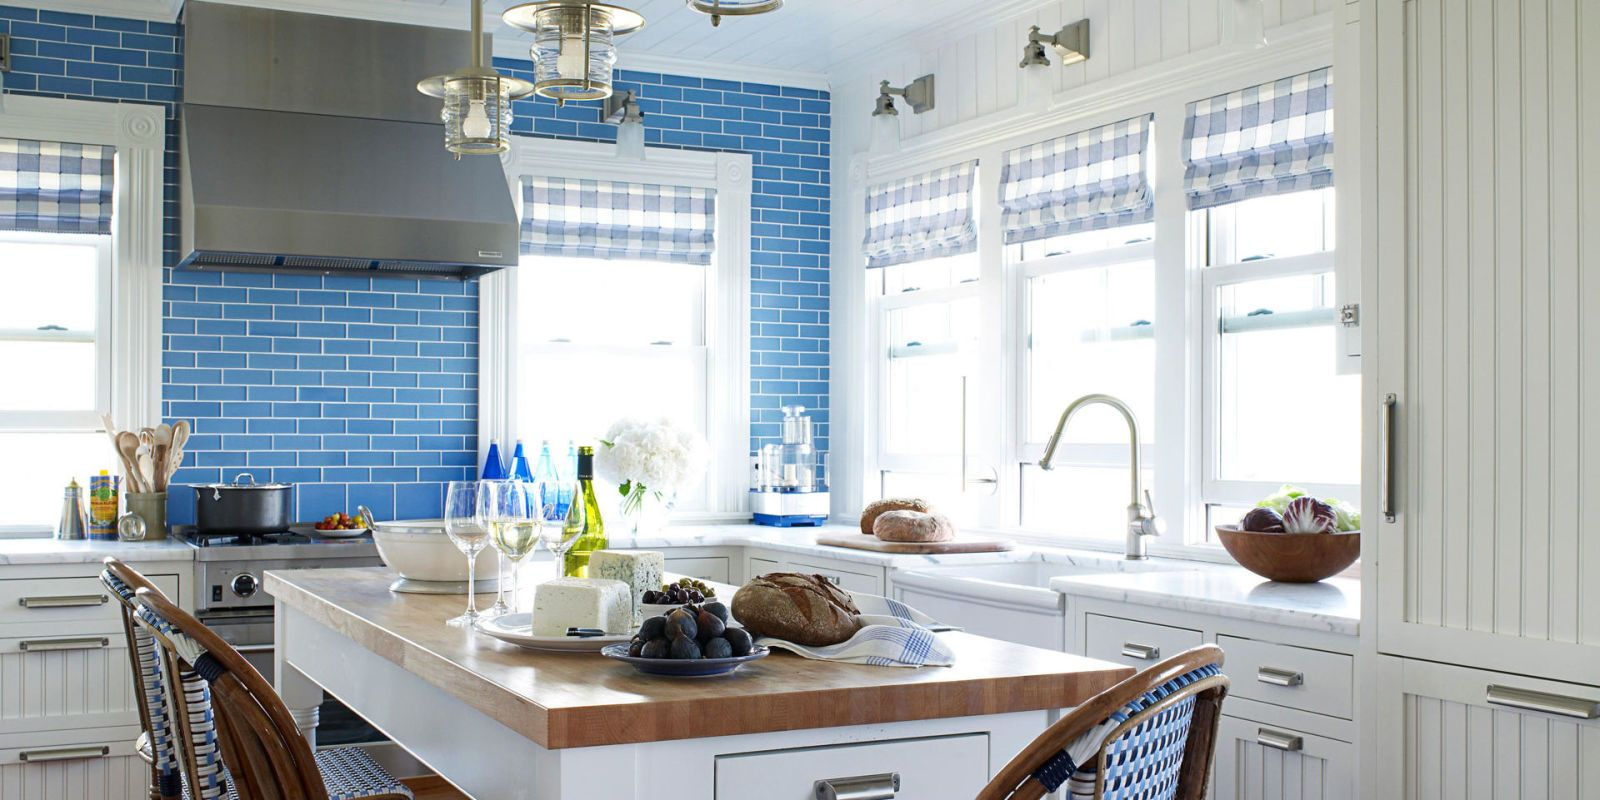 Charmant Blue Kitchen